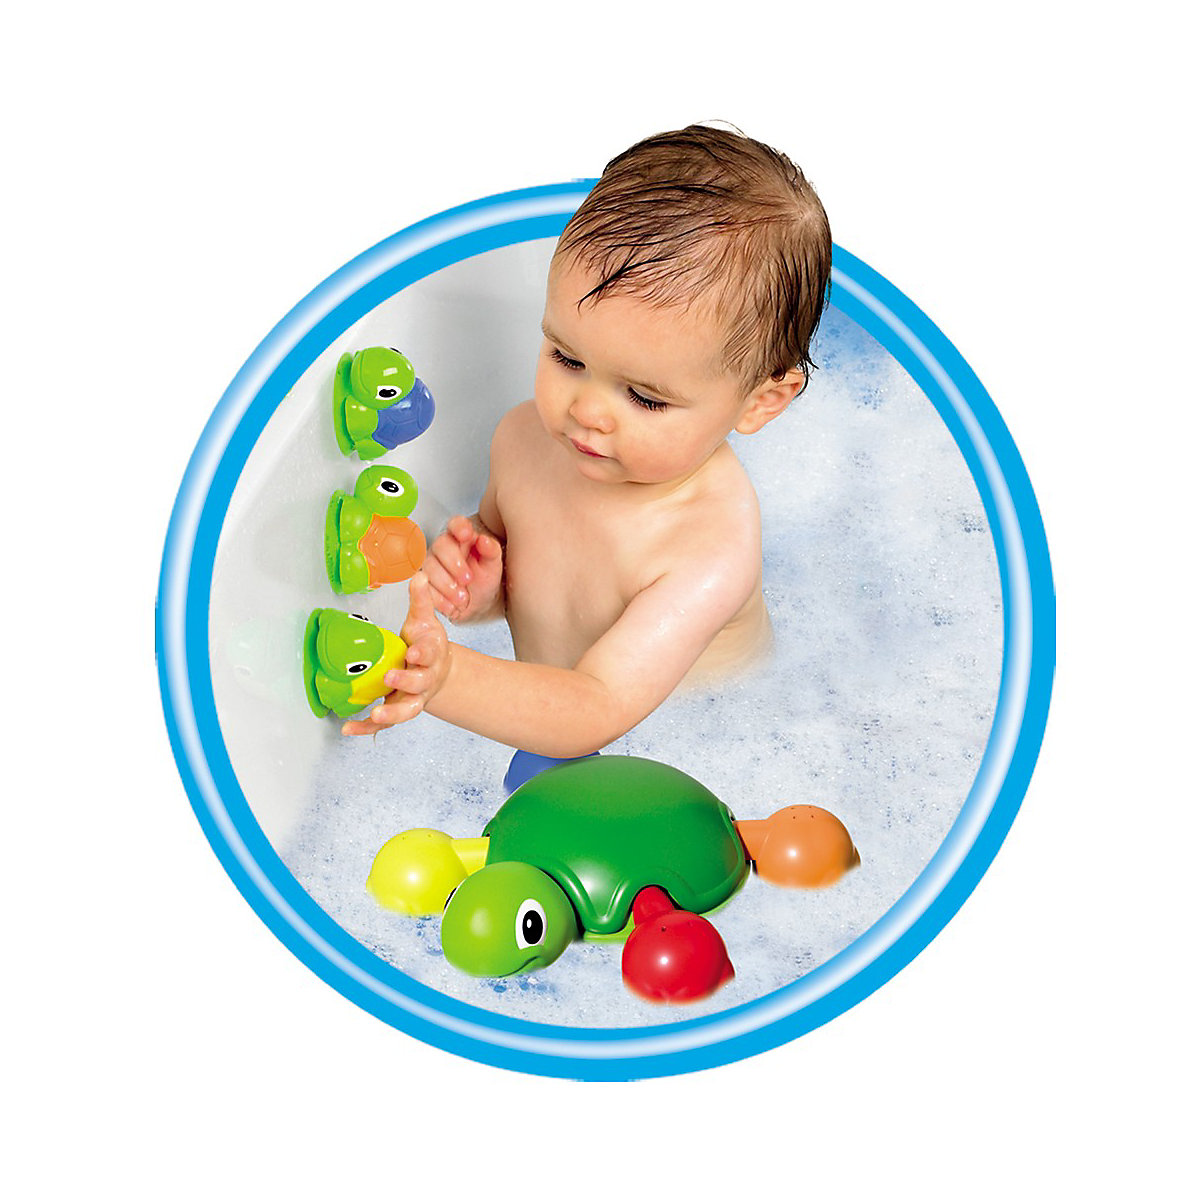 Bath Toy TOMY 3232813 Bathing Bath toys for bathroom on suckers Rubber Duck Doll Kids 13pcs lovely mixed colorful rubber can float on water and sound when squeeze you squeaky bathing toys for children bath duck